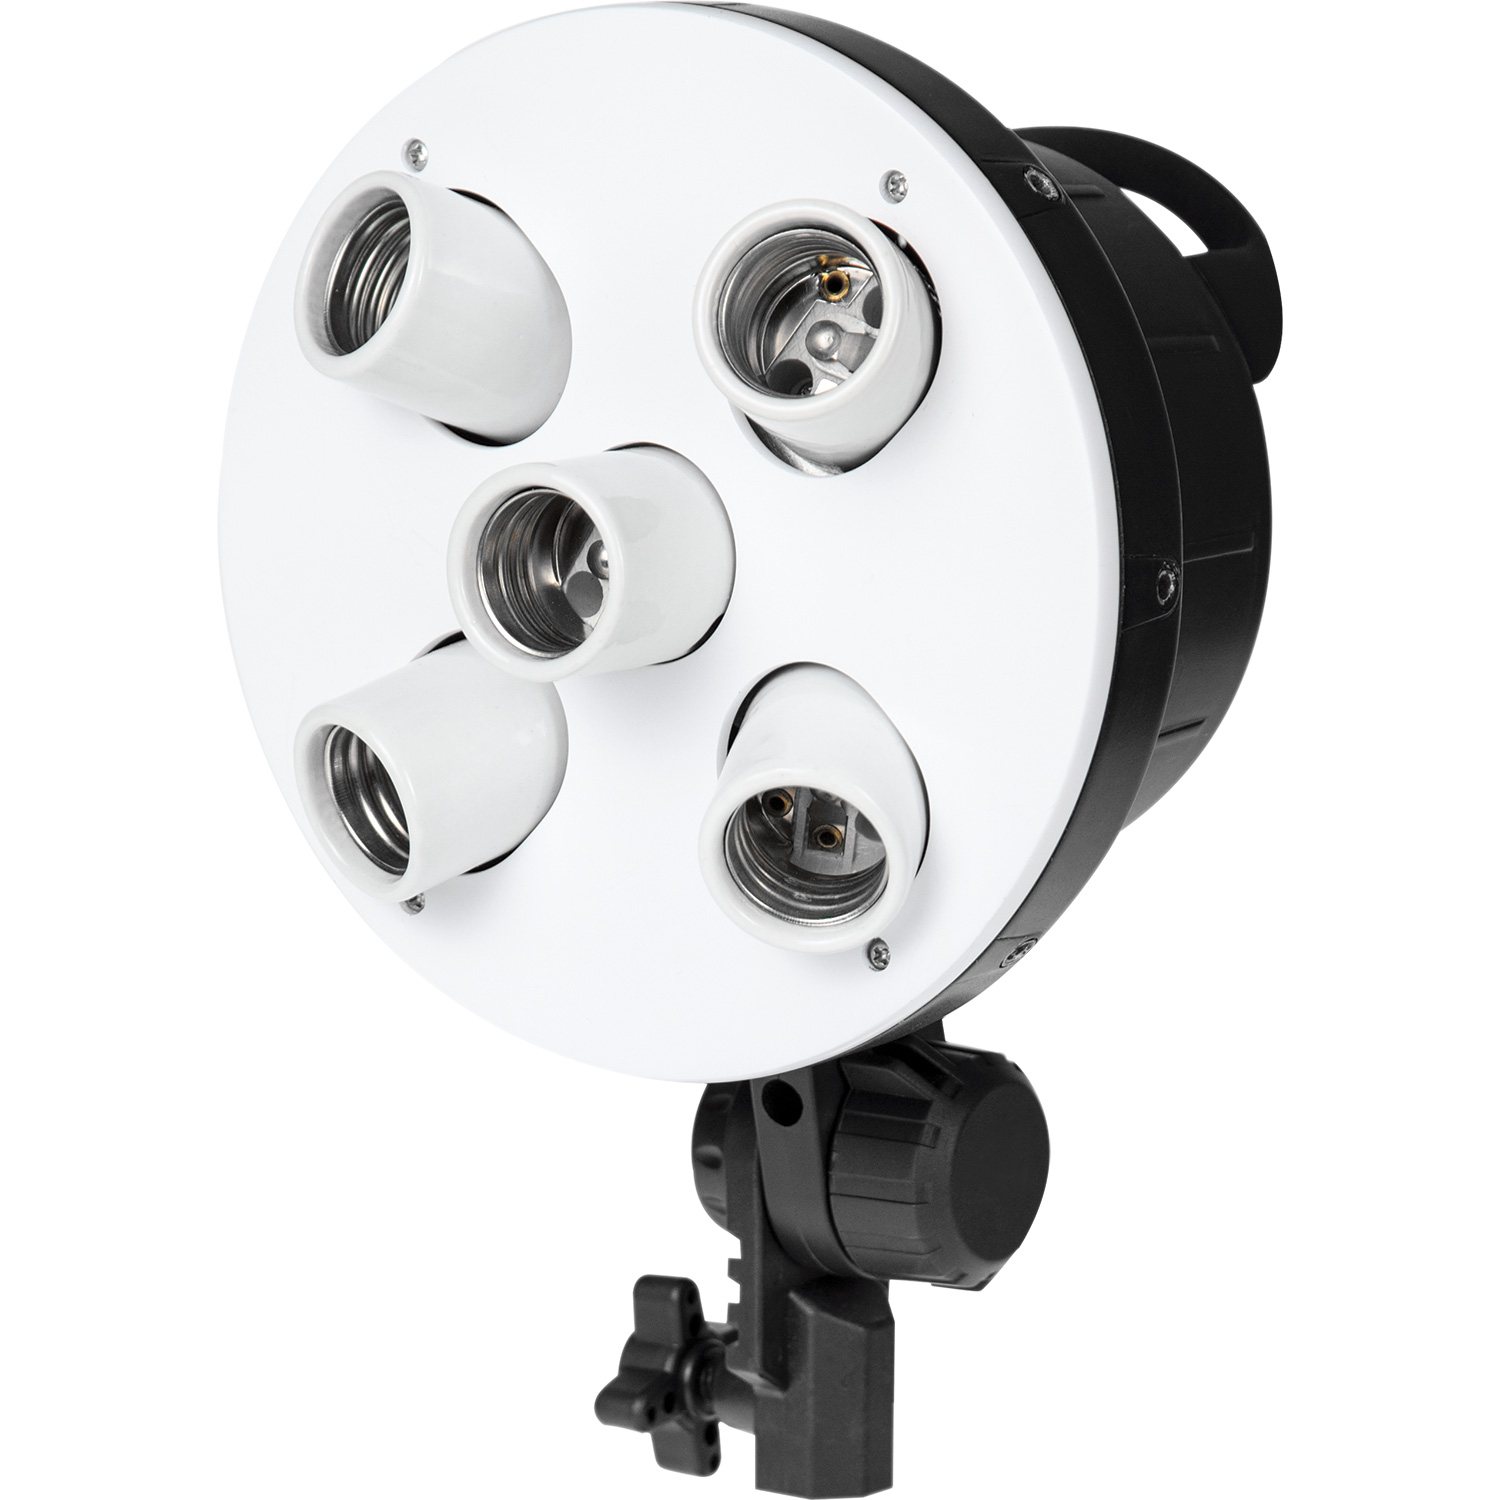 D5 5-Socket Light Head